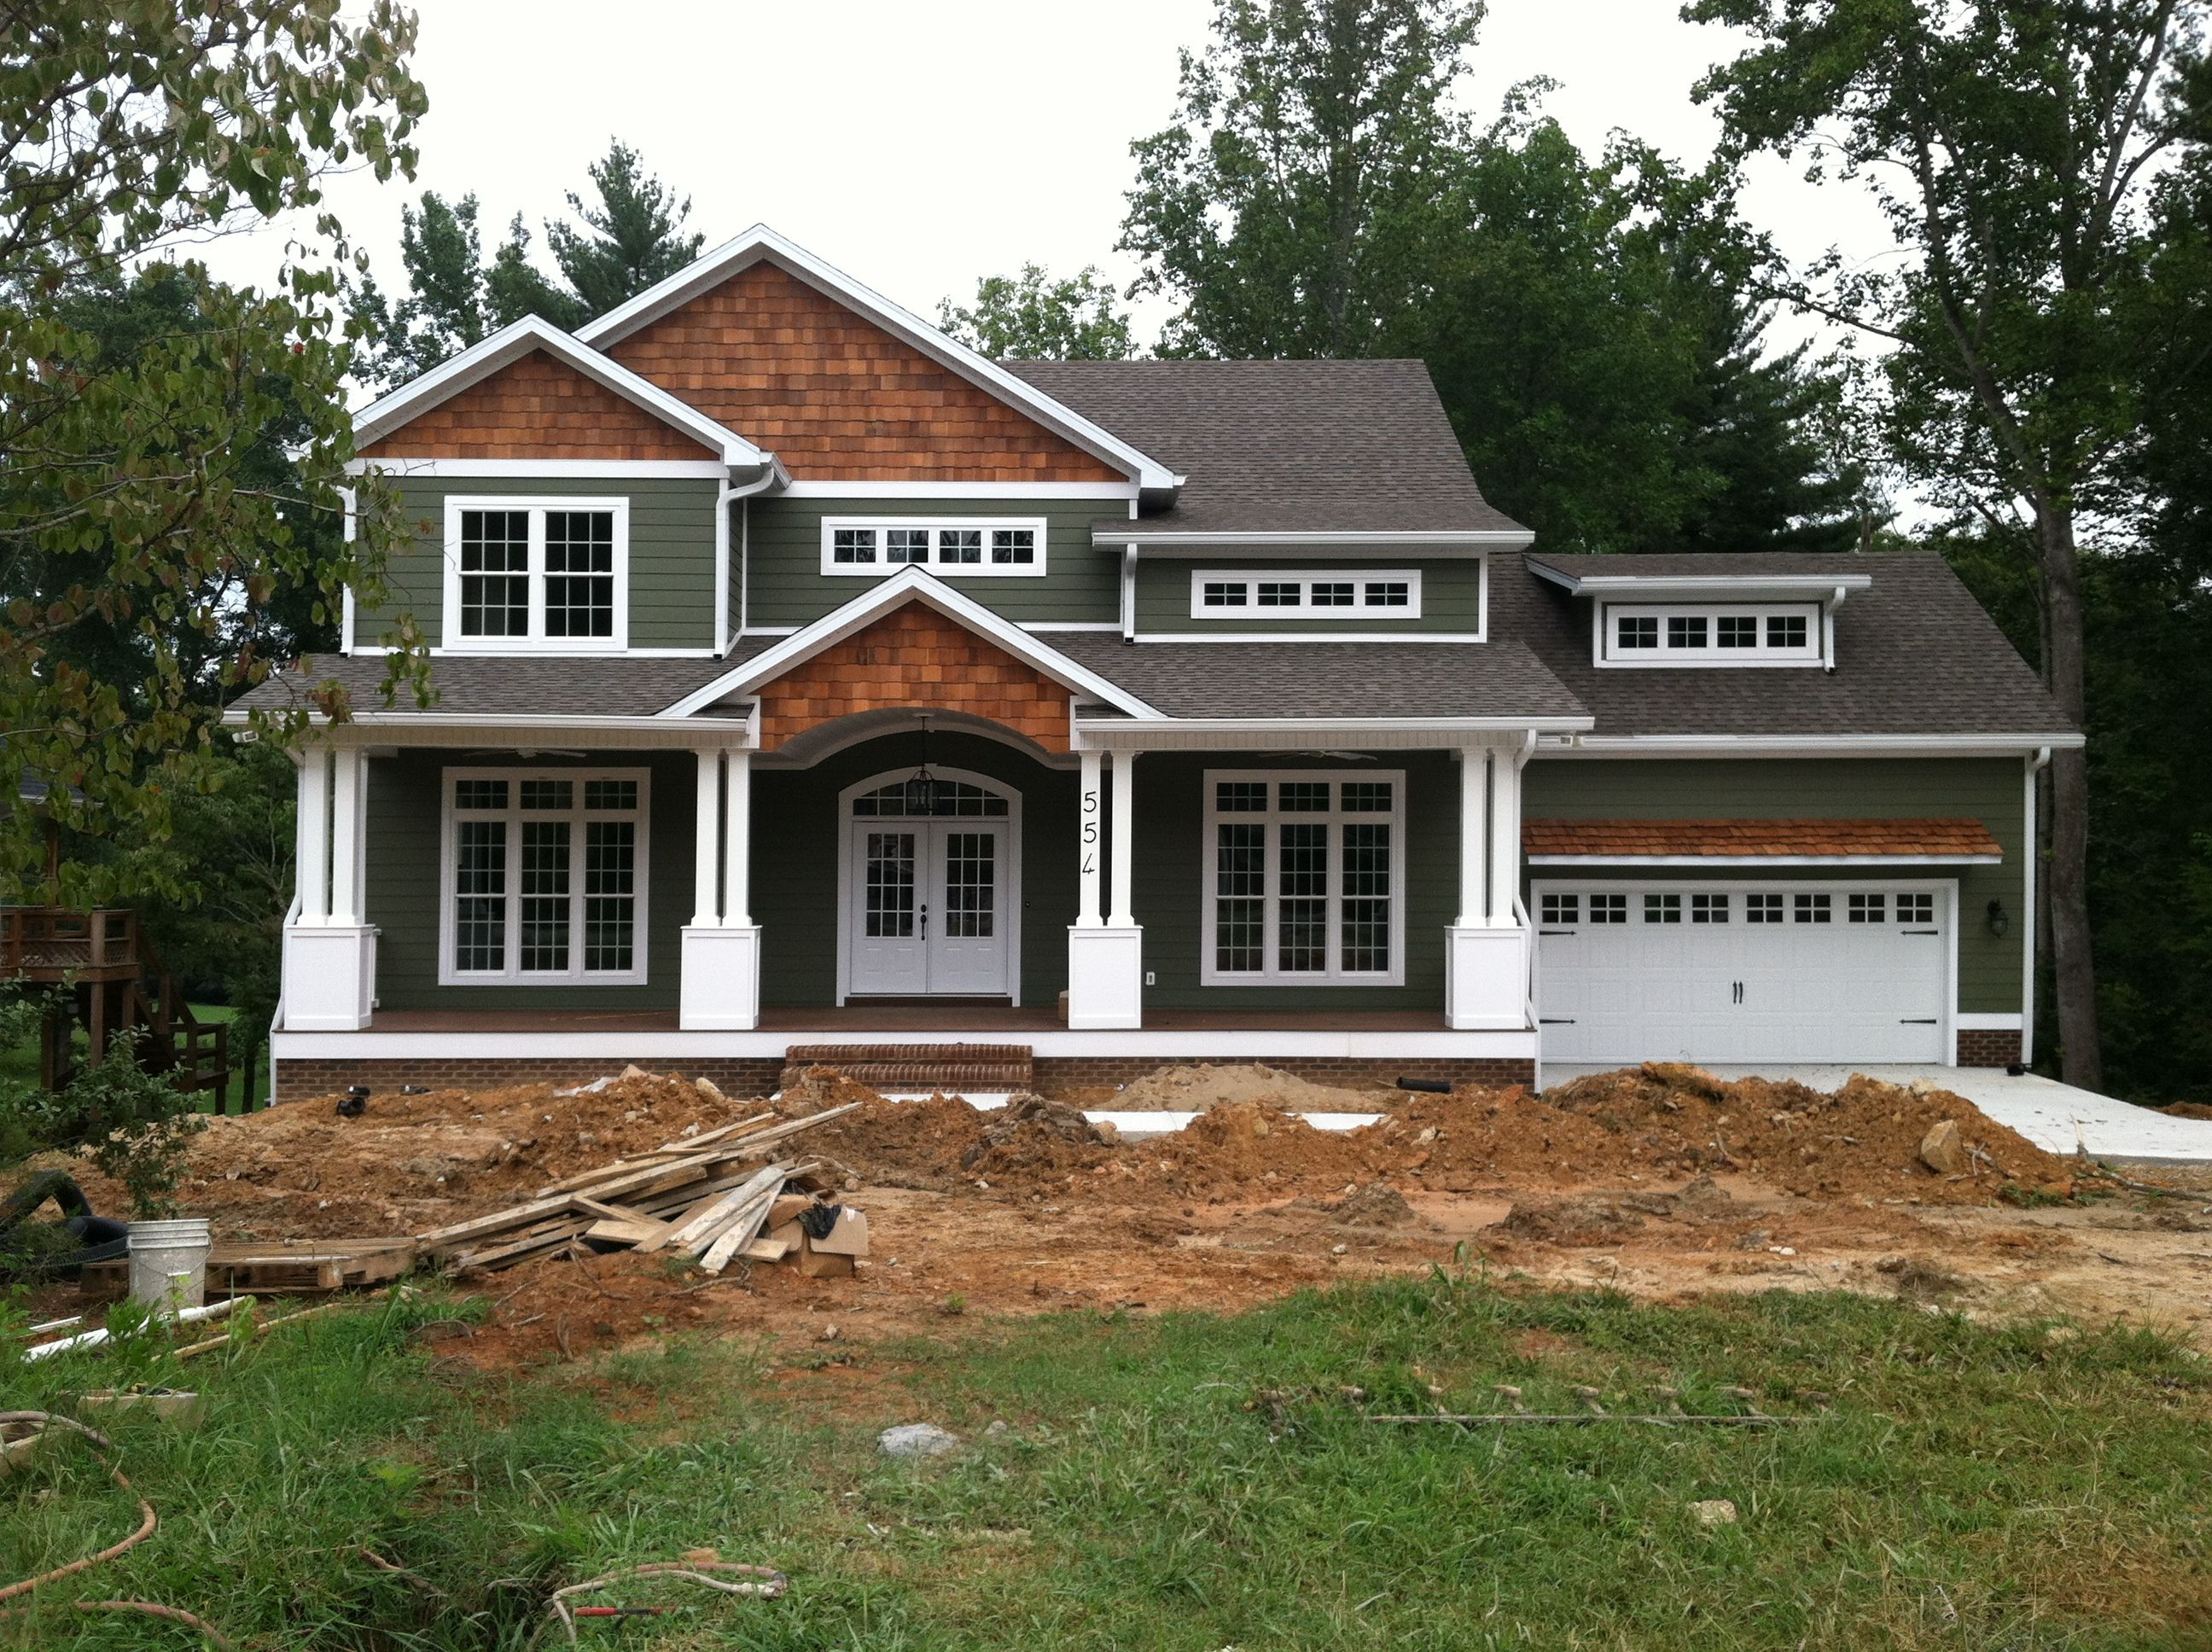 Craftsman Home Exterior craftsman style home turn the garage to the side, change the